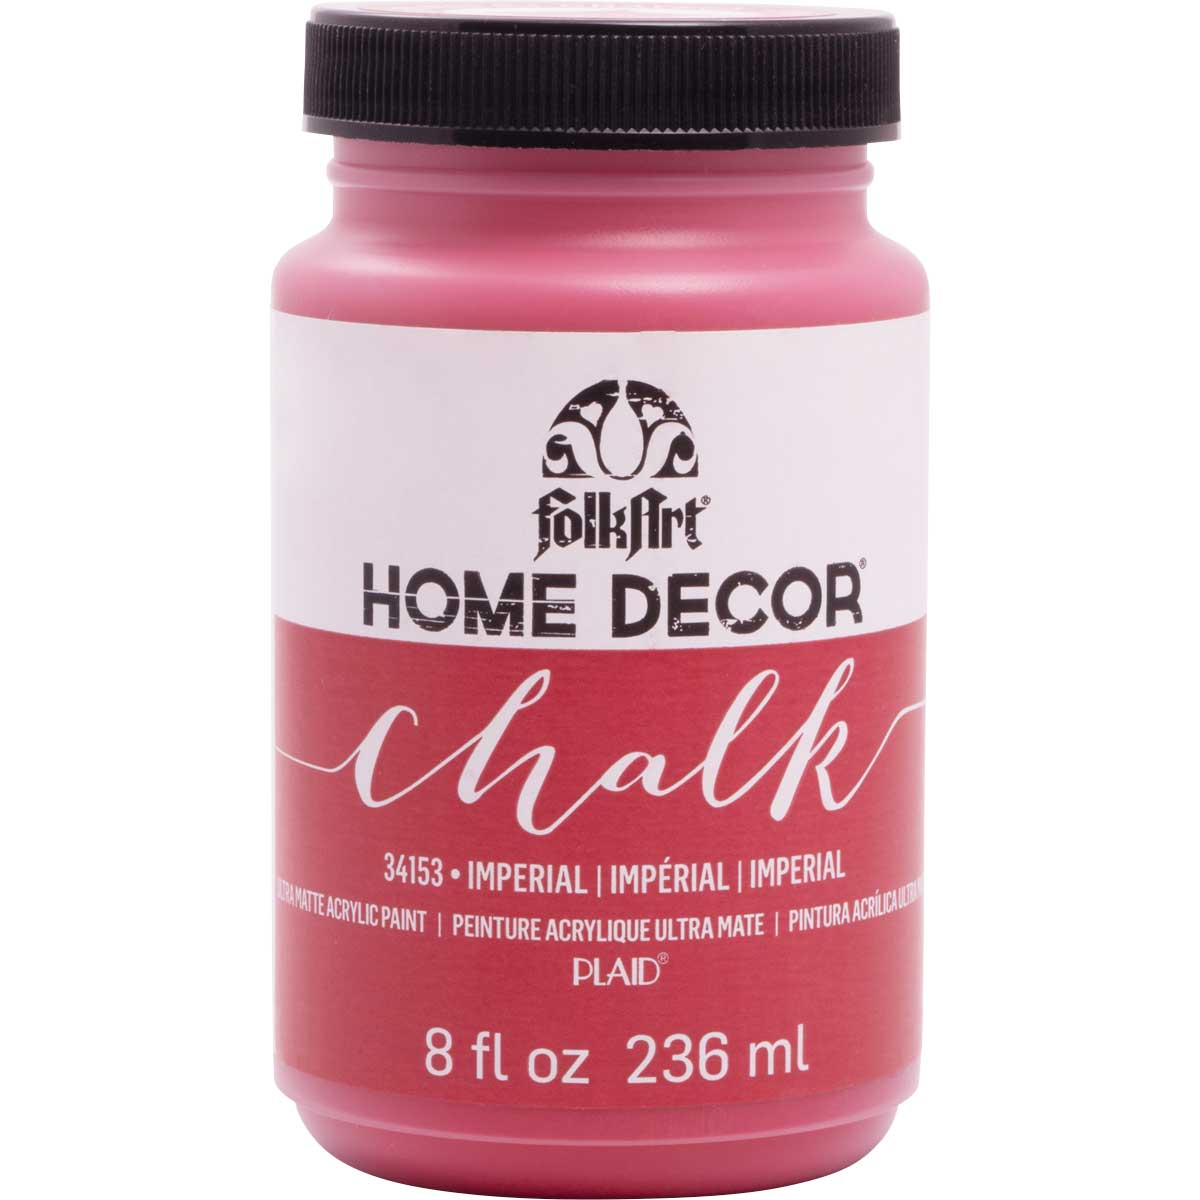 FolkArt ® Home Decor™ Chalk - Imperial, 8 oz. - 34153